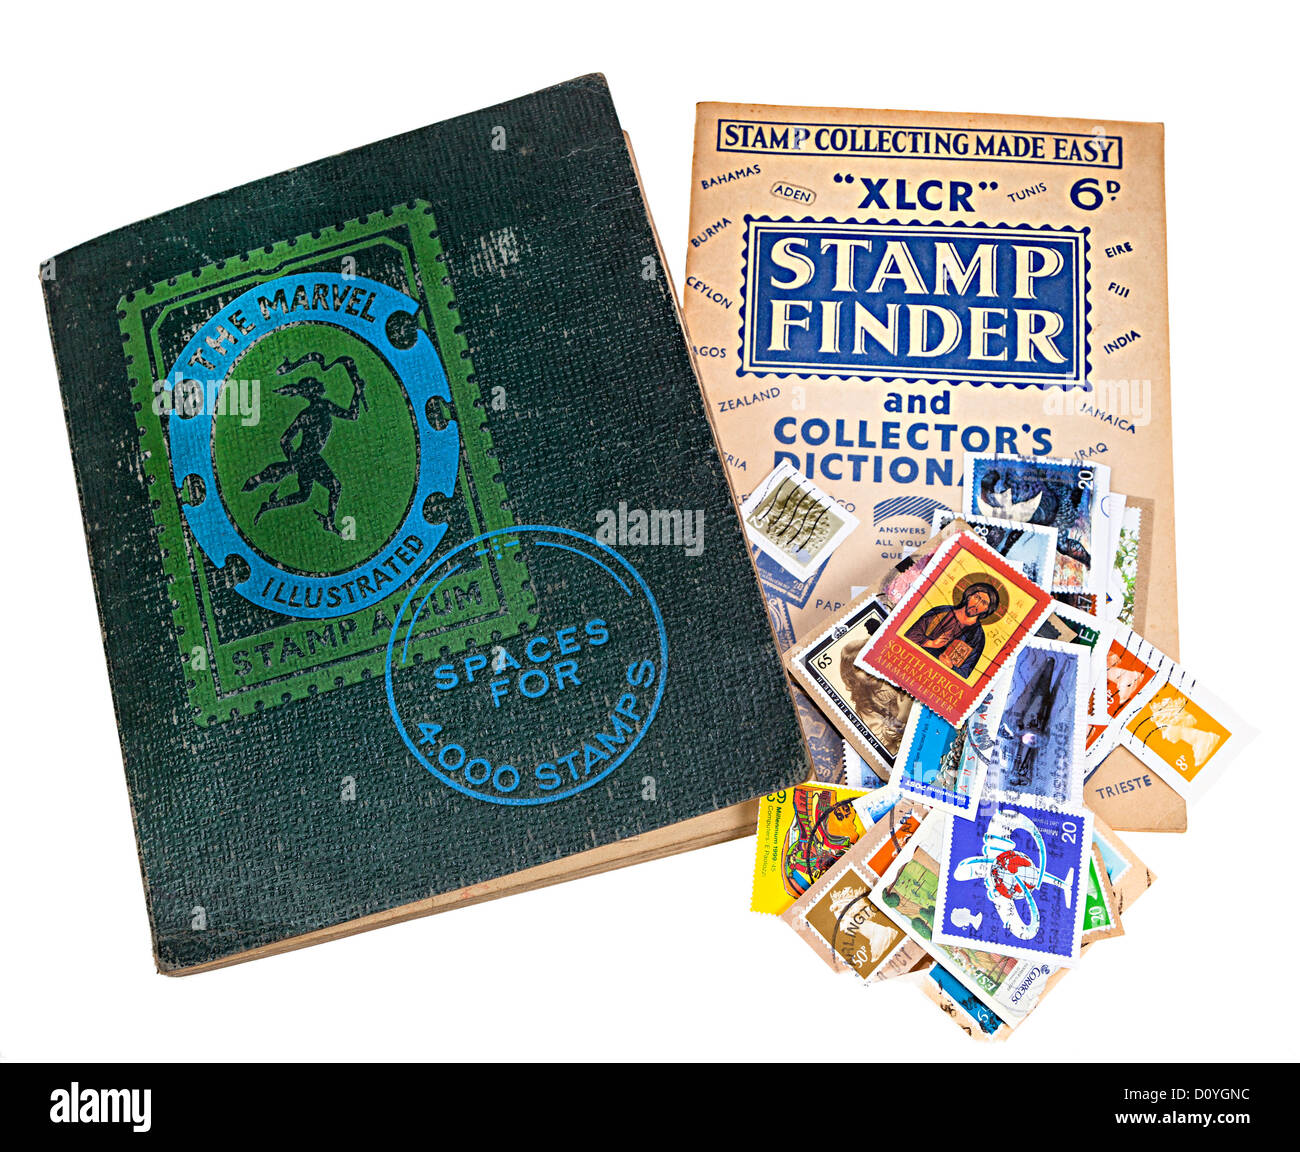 Old stamp album with stamp collecting guide and loose stamps, UK - Stock Image